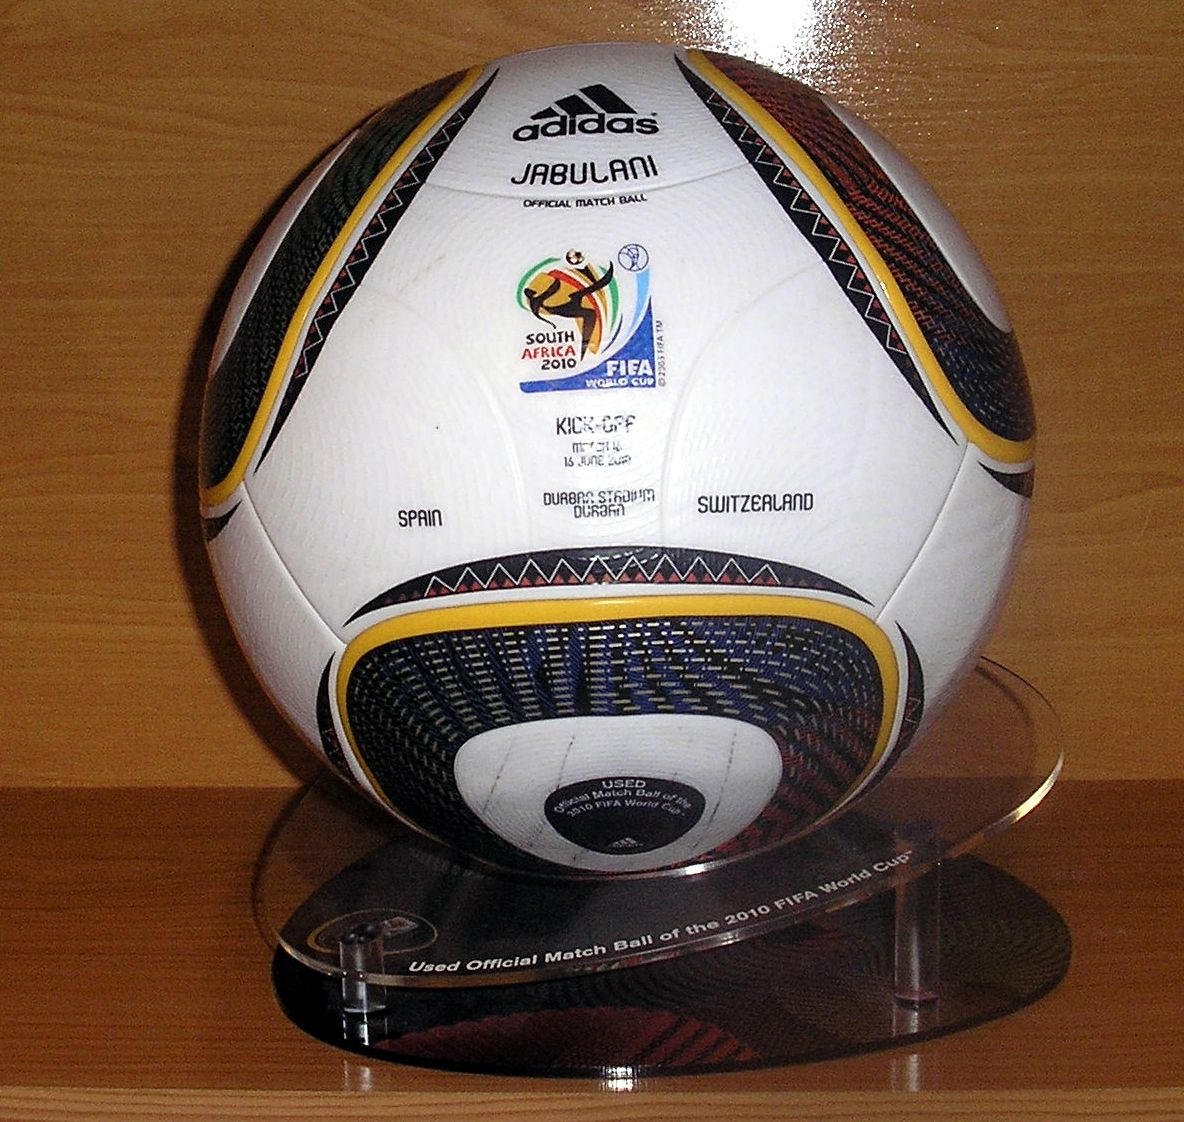 super popular 0a605 7ad4f Made in China match ball FIFA World Cup 2010 South Africa Adidas ...